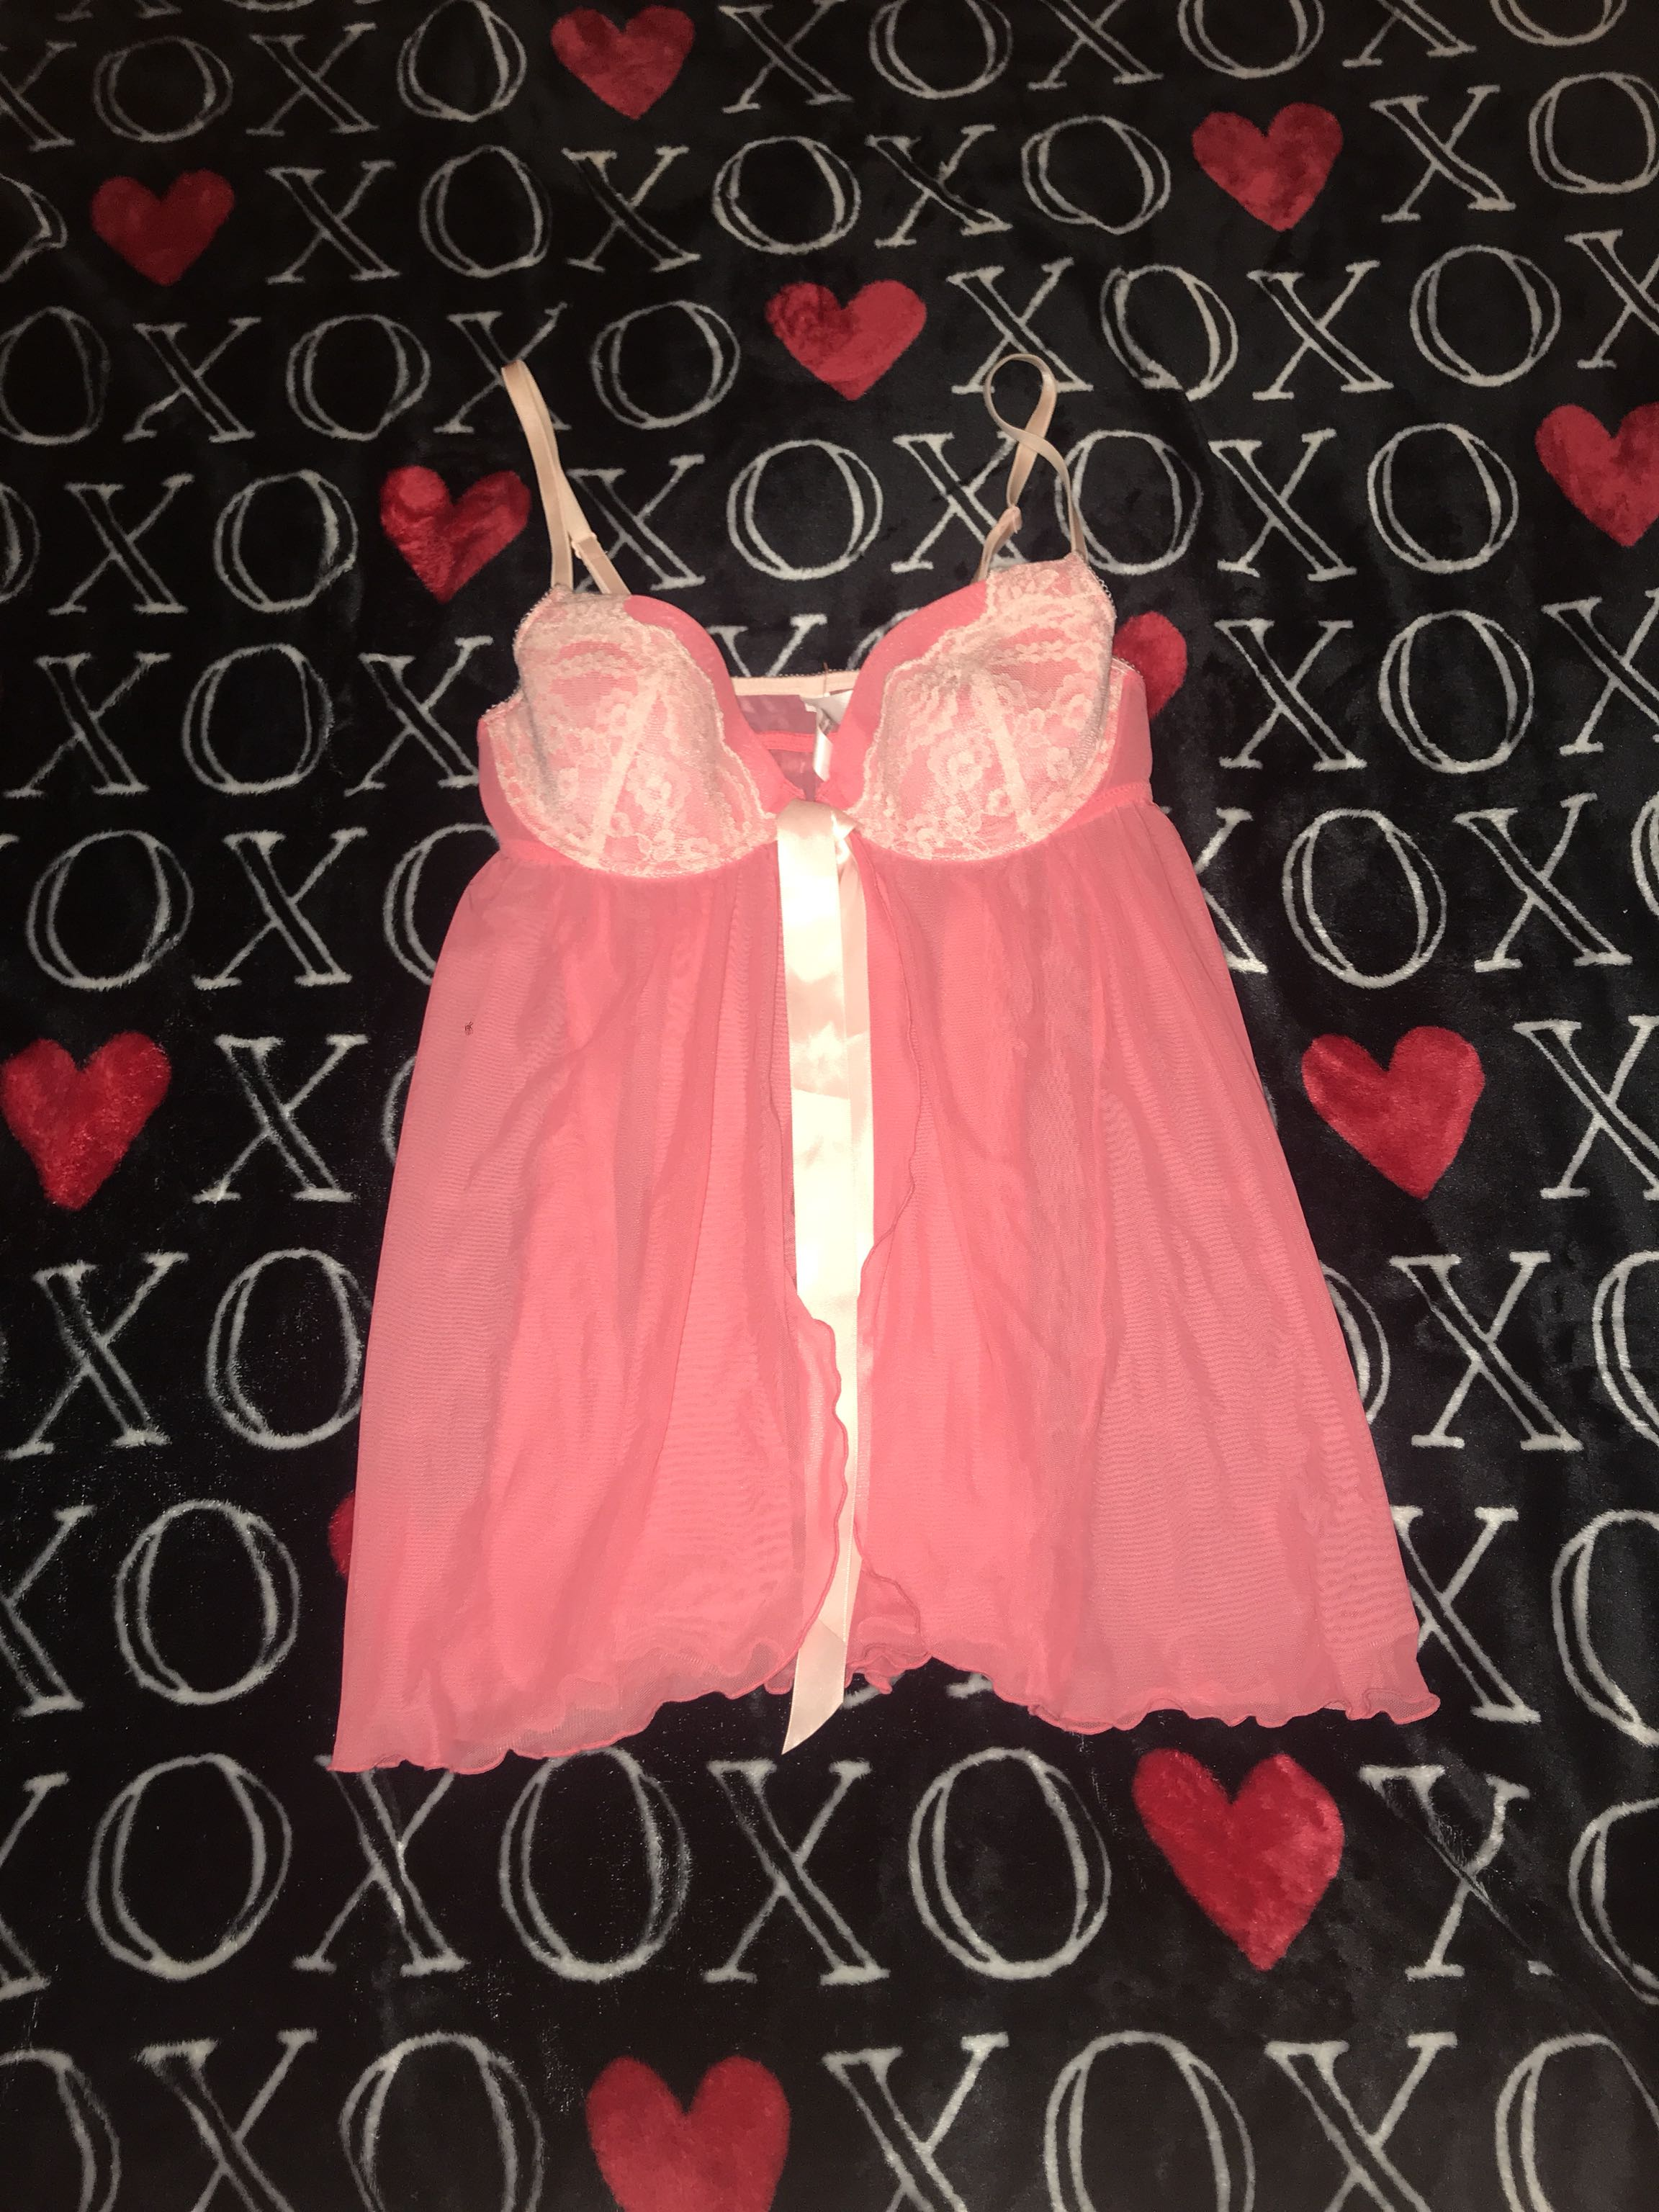 Pretty women's nightie size medium from Macy's